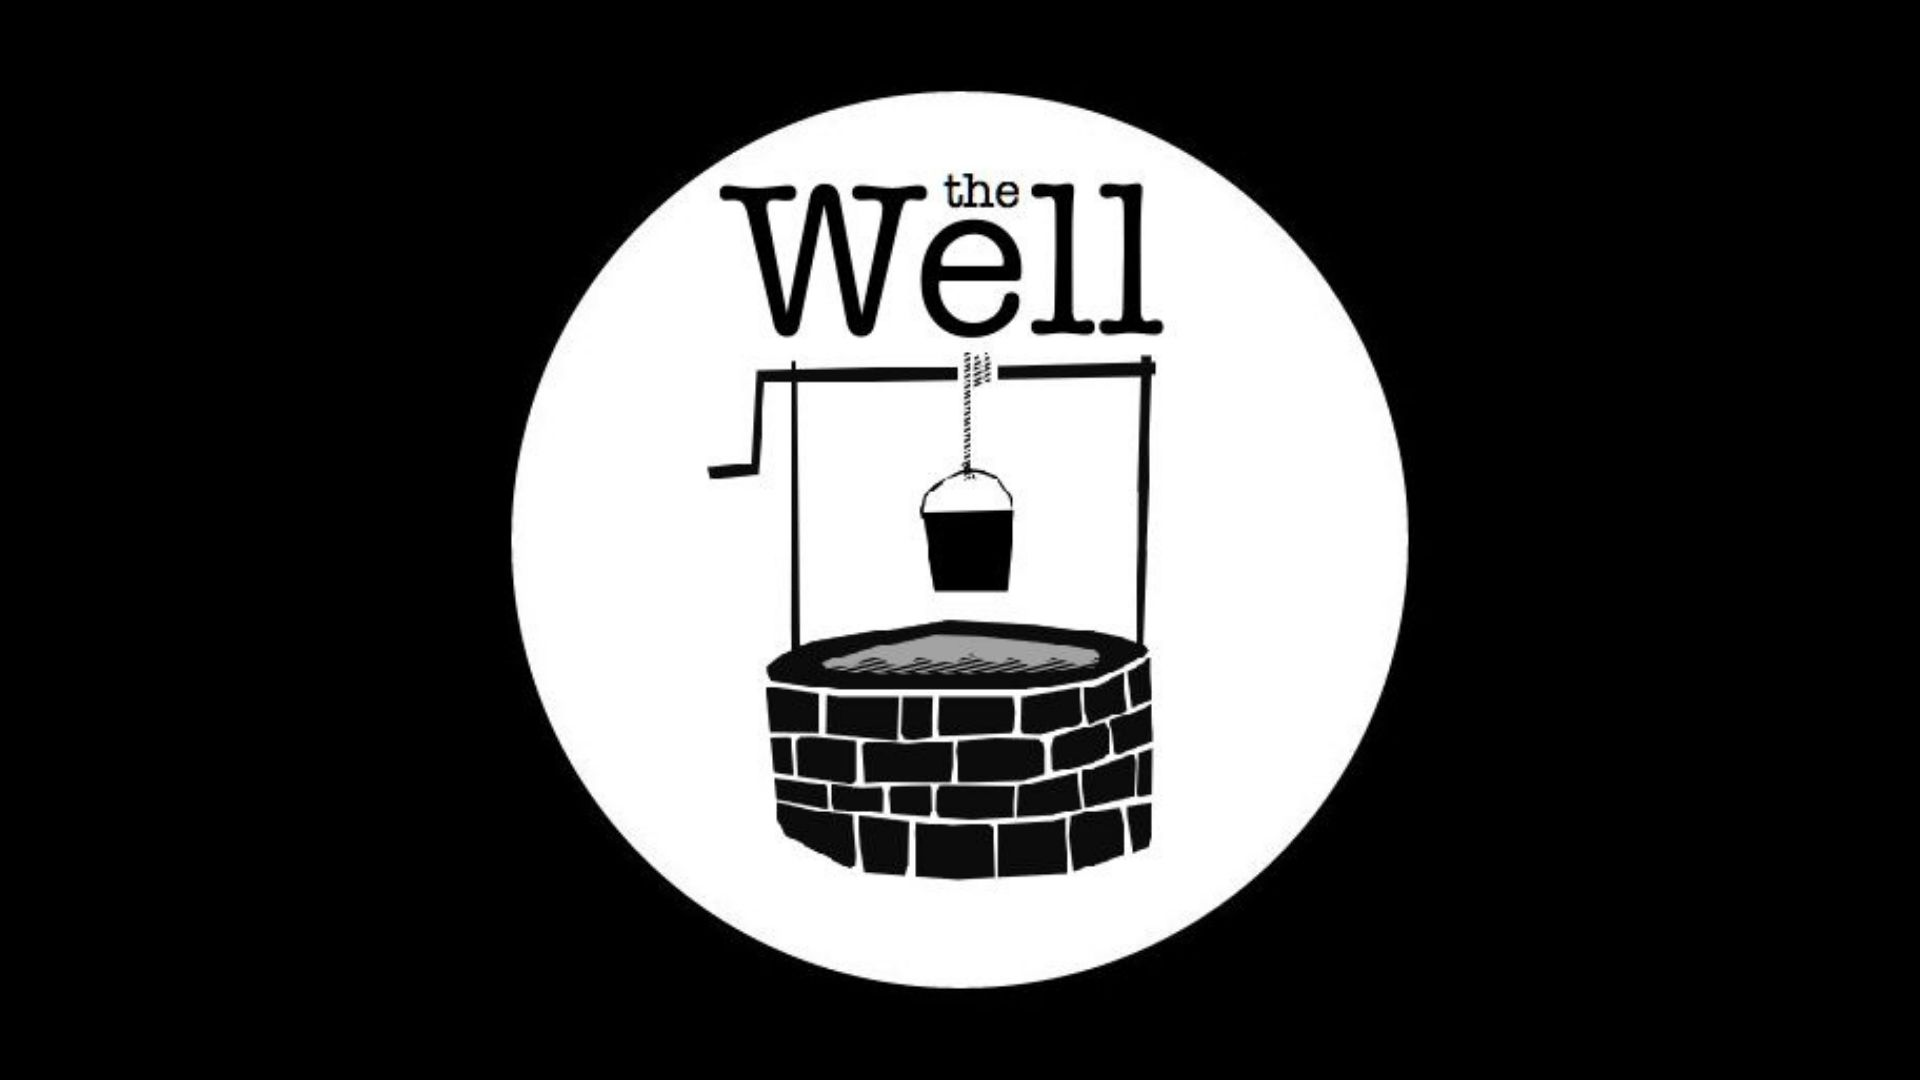 The Well image